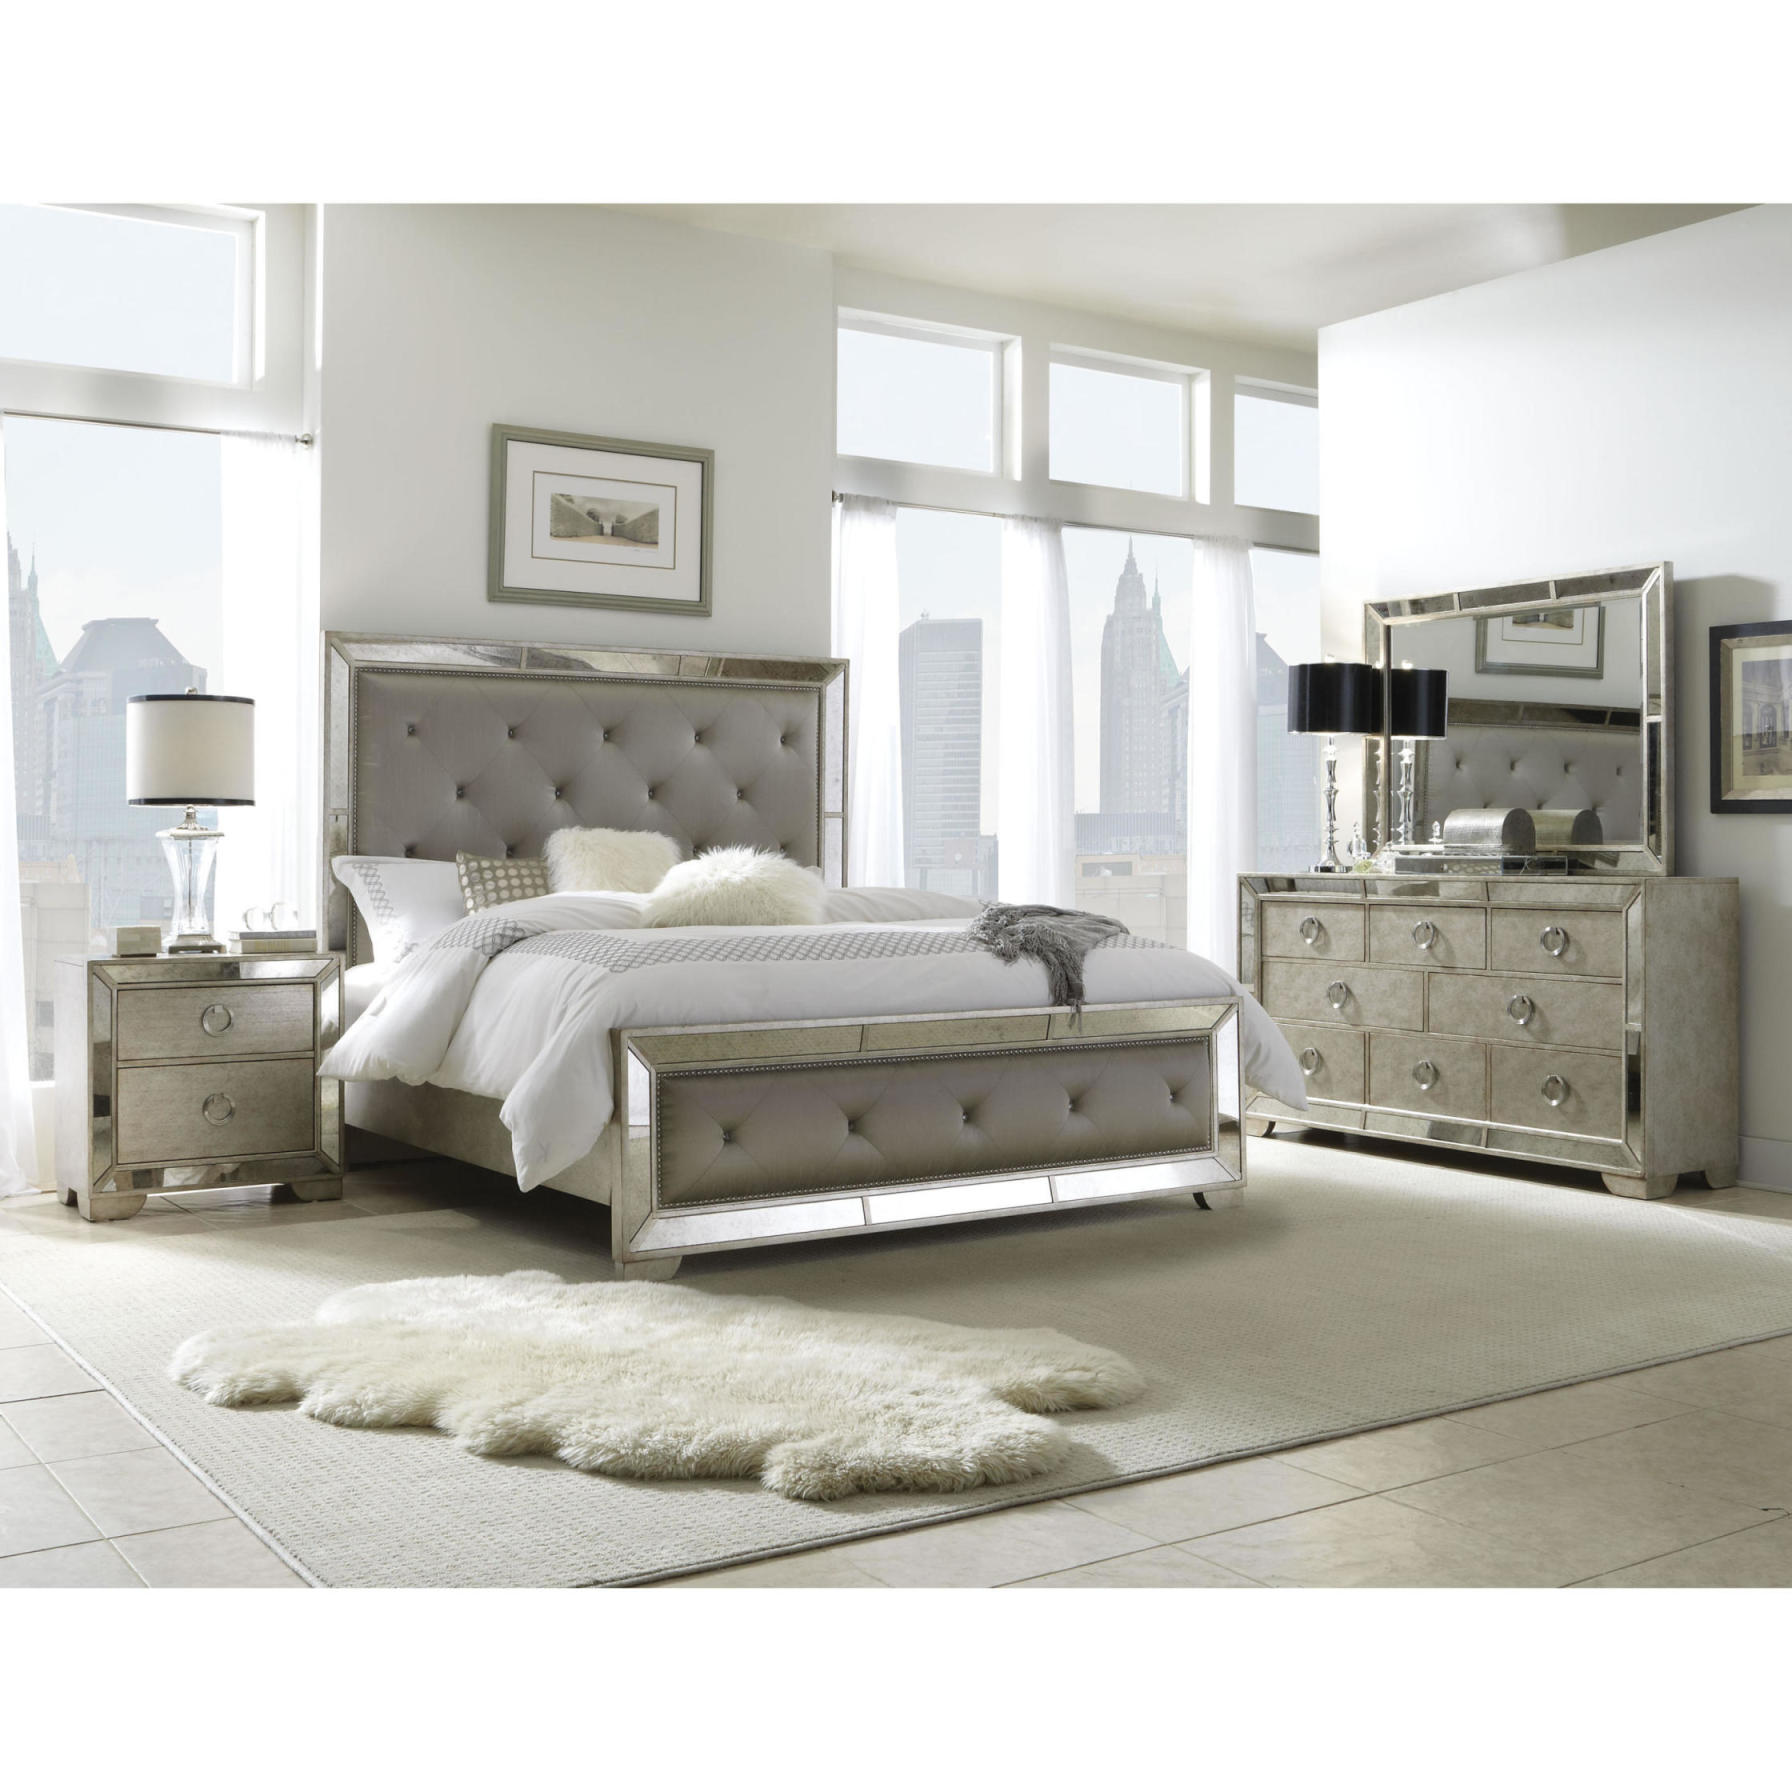 Mirrored Cabinets Bedroom-Mirrored Bedroom Furniture Mirrored Glass Chest  Of Drawers